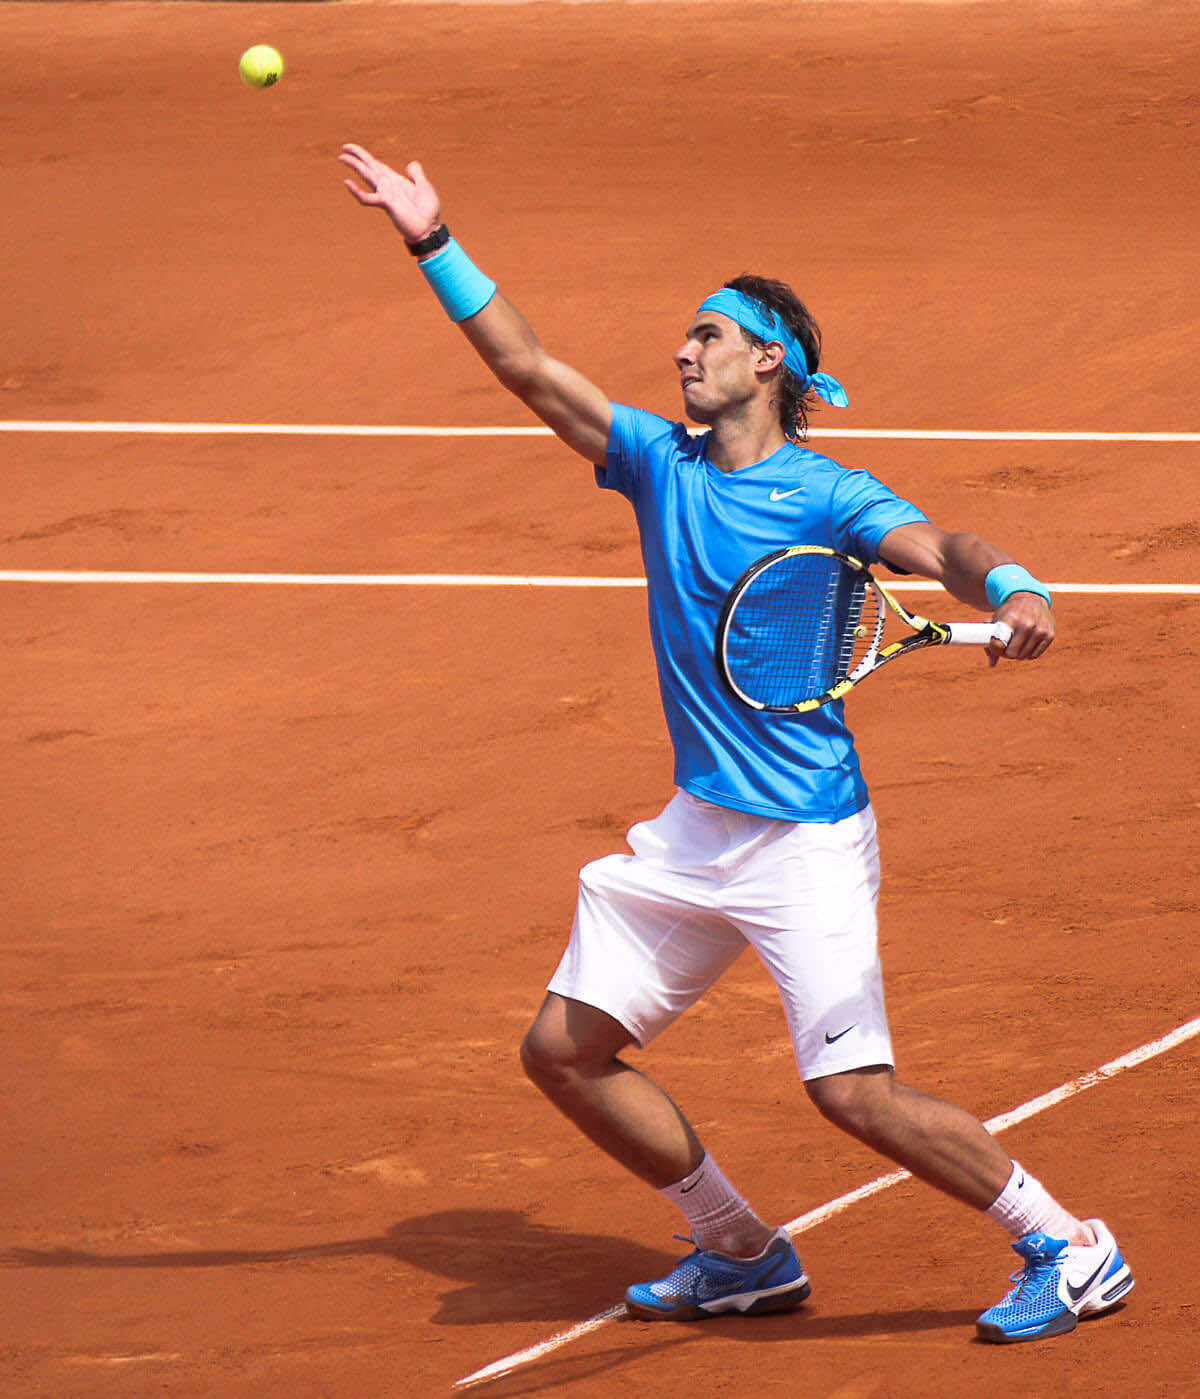 Nadal Playing Tennis